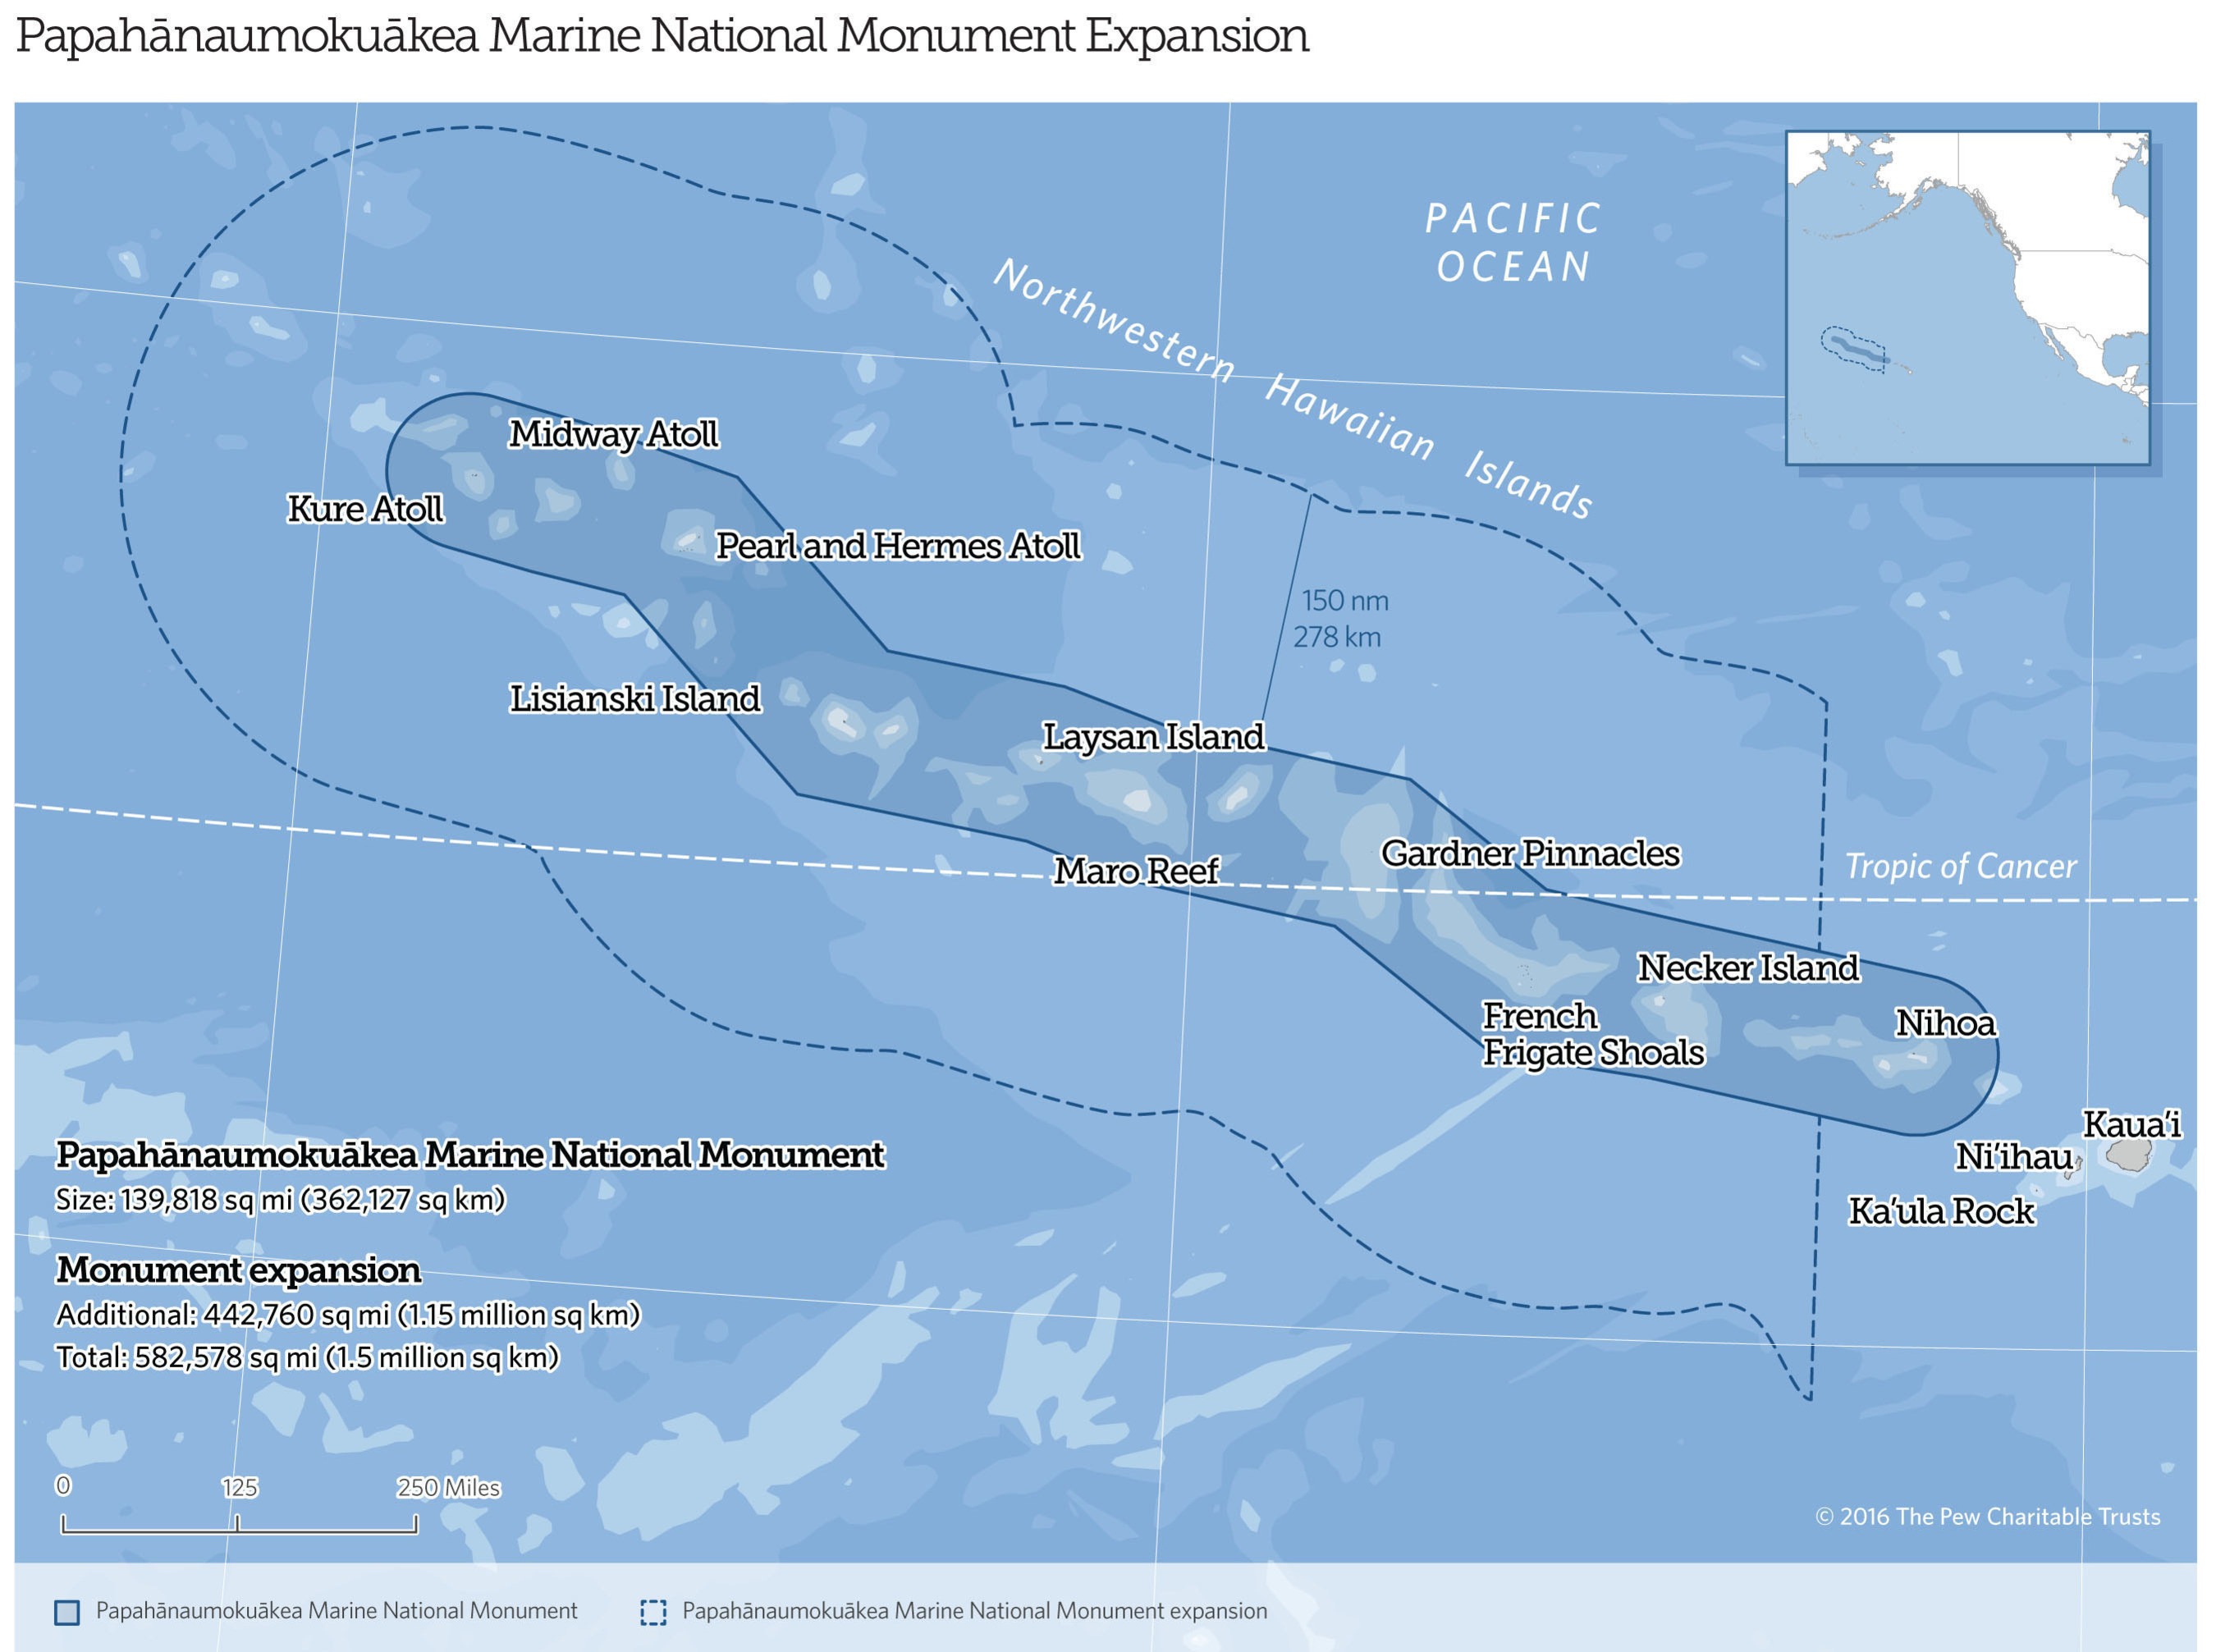 Papahānaumokuākea Marine National Monument Expansion